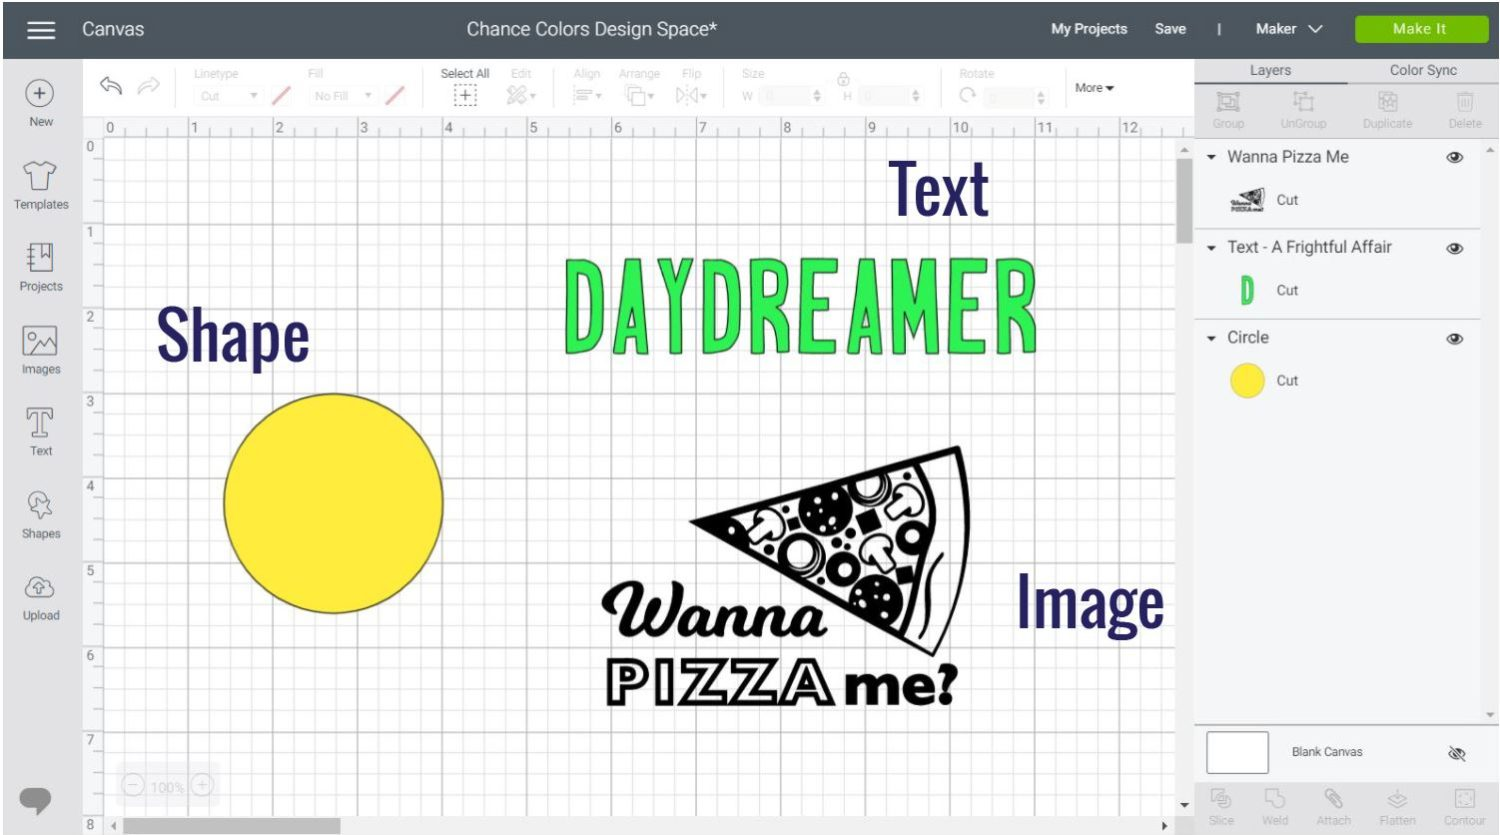 Different types of layers you can add color to in Cricut Design Space